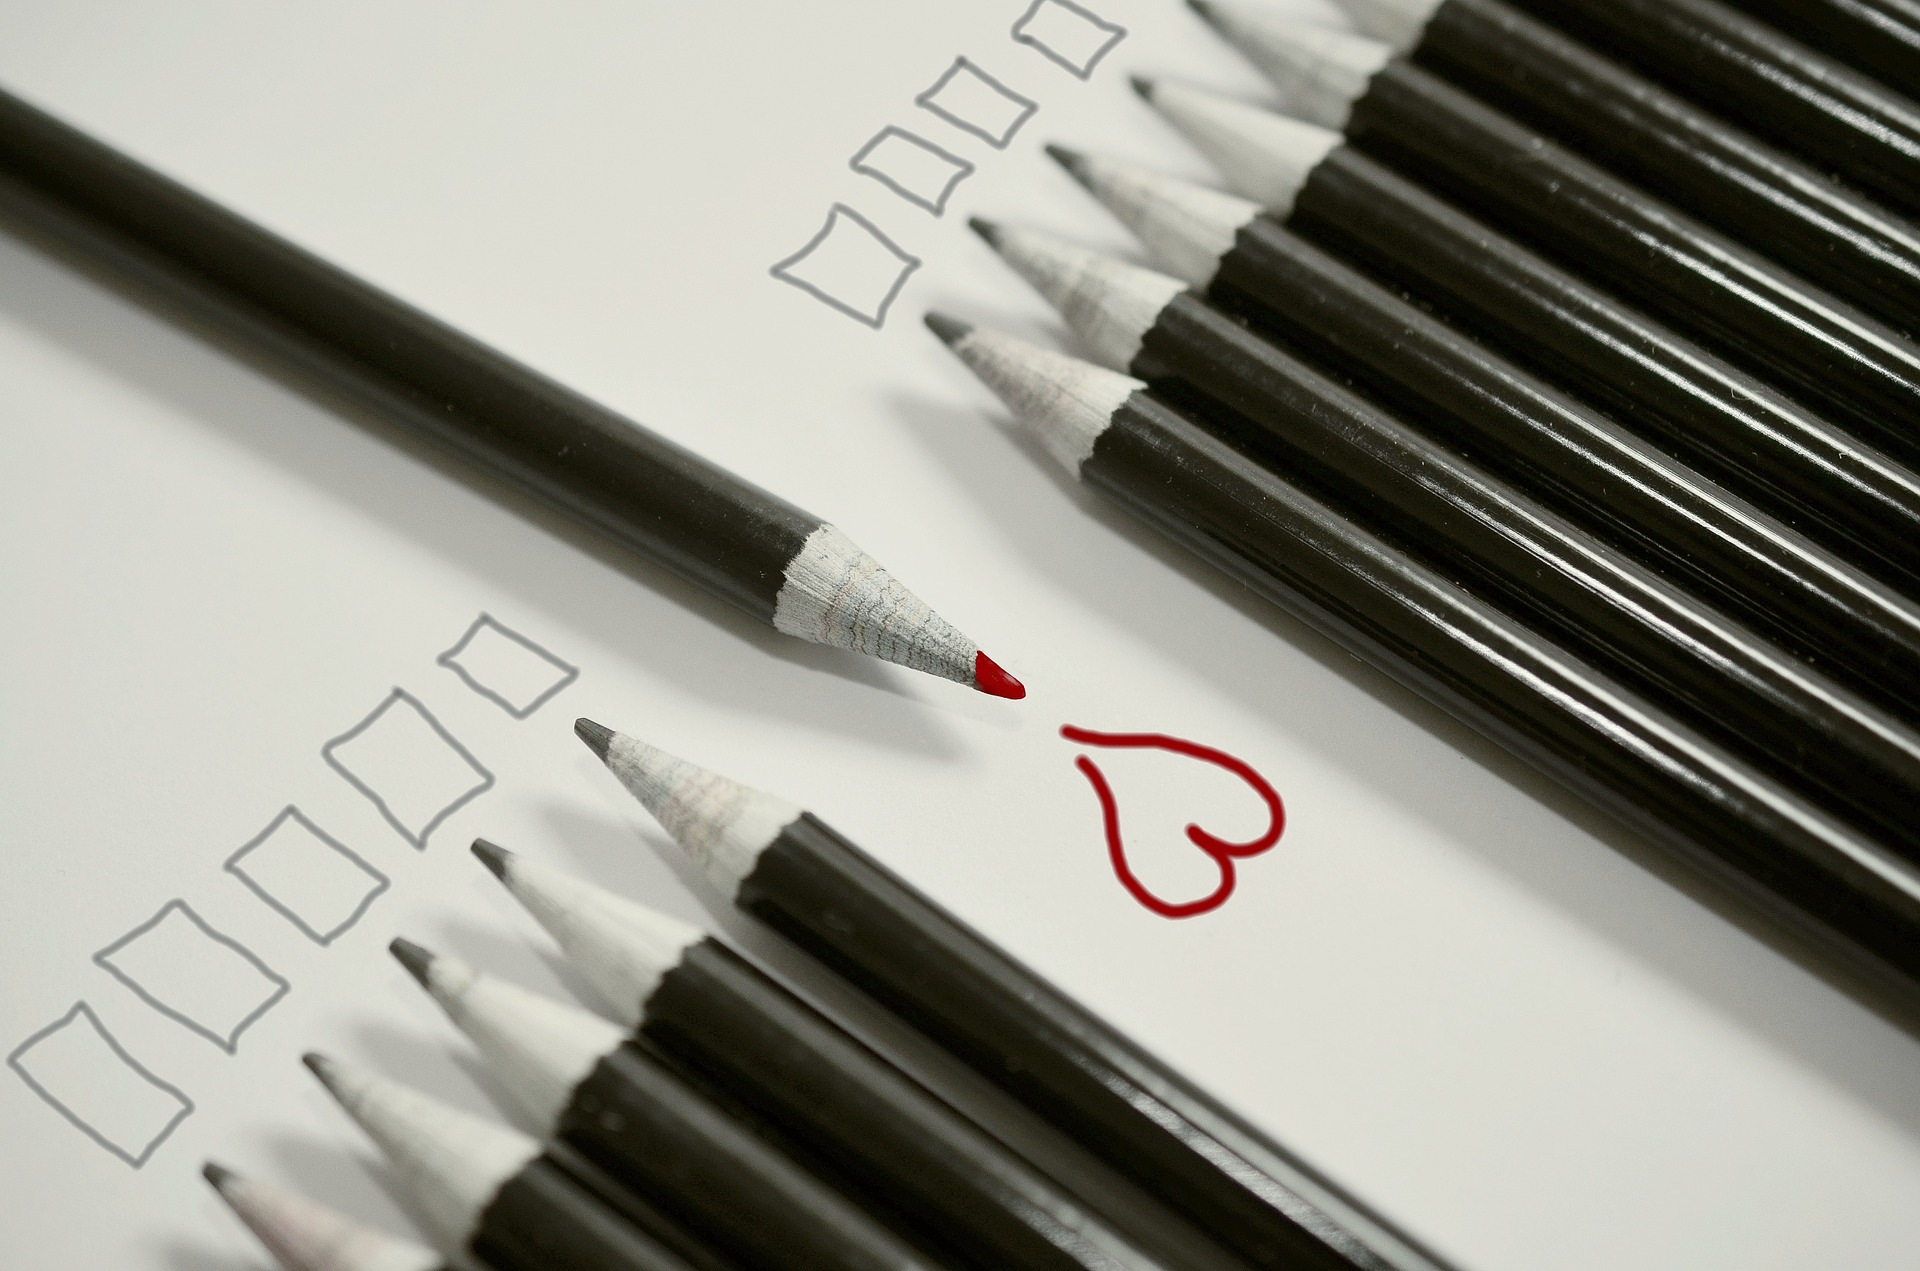 a line of perncils facing one way with one facing a different way drawing a heart